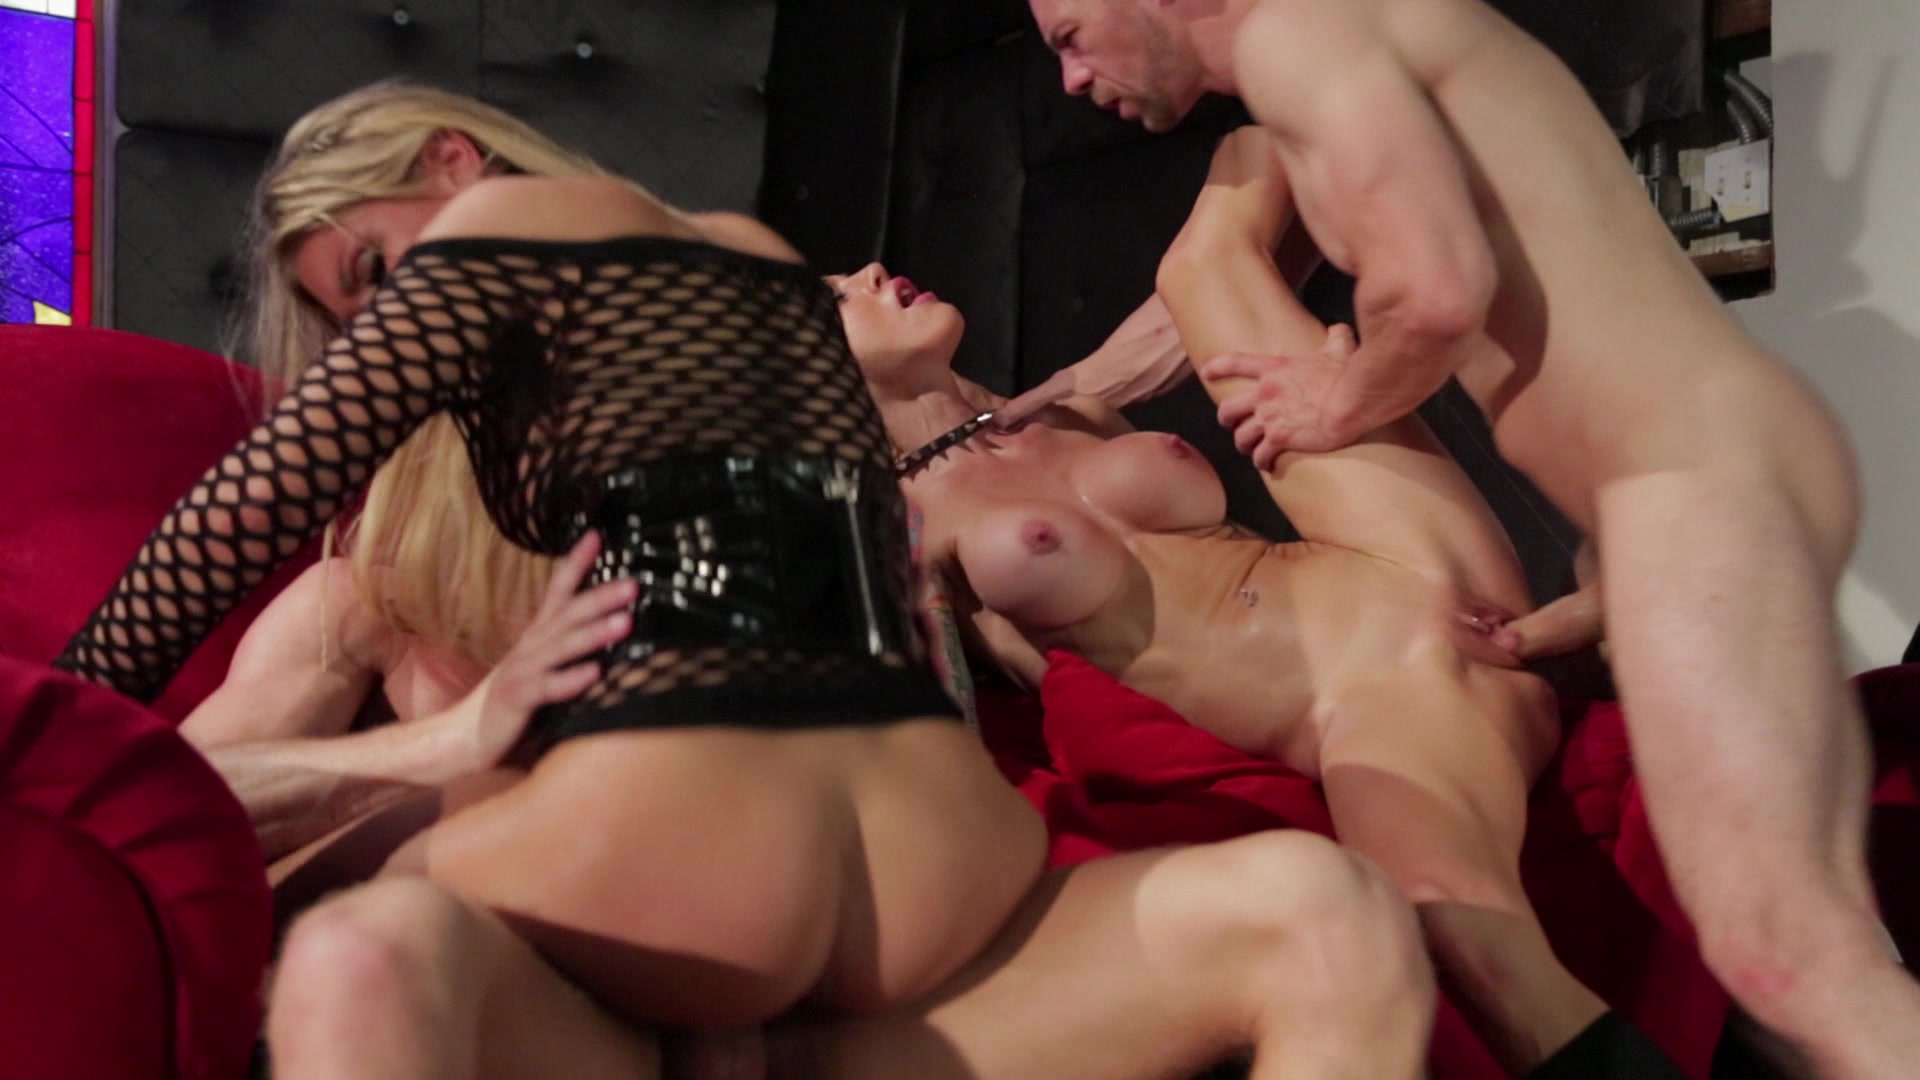 Watch Free Porn Dvd Images